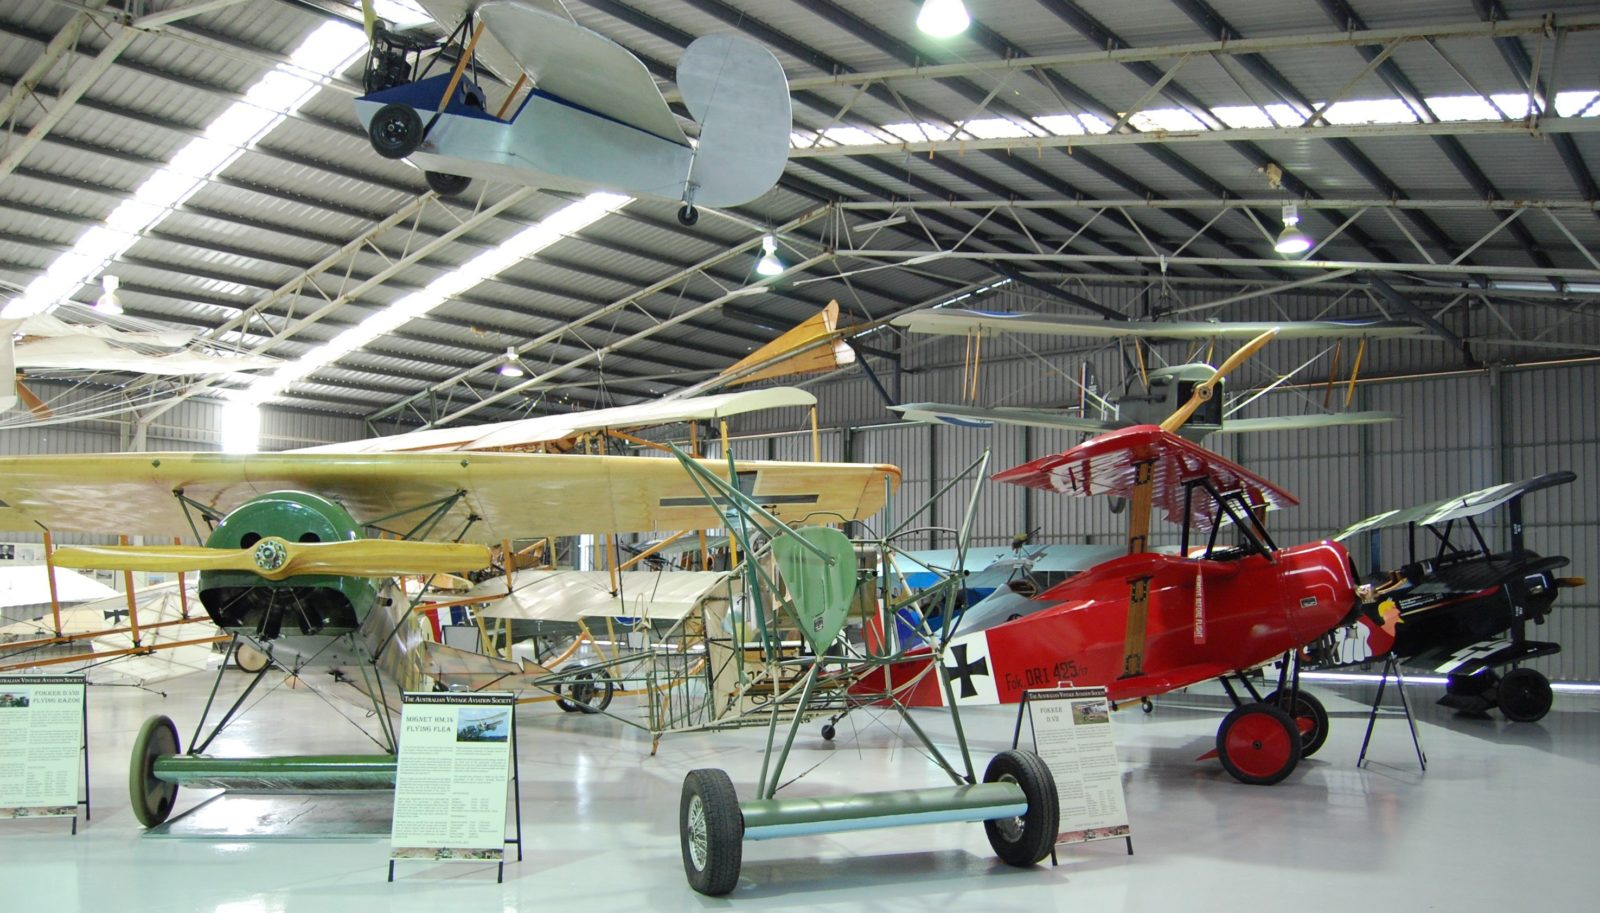 Some of the World War One Fokker aircraft on display within TAVAS museum